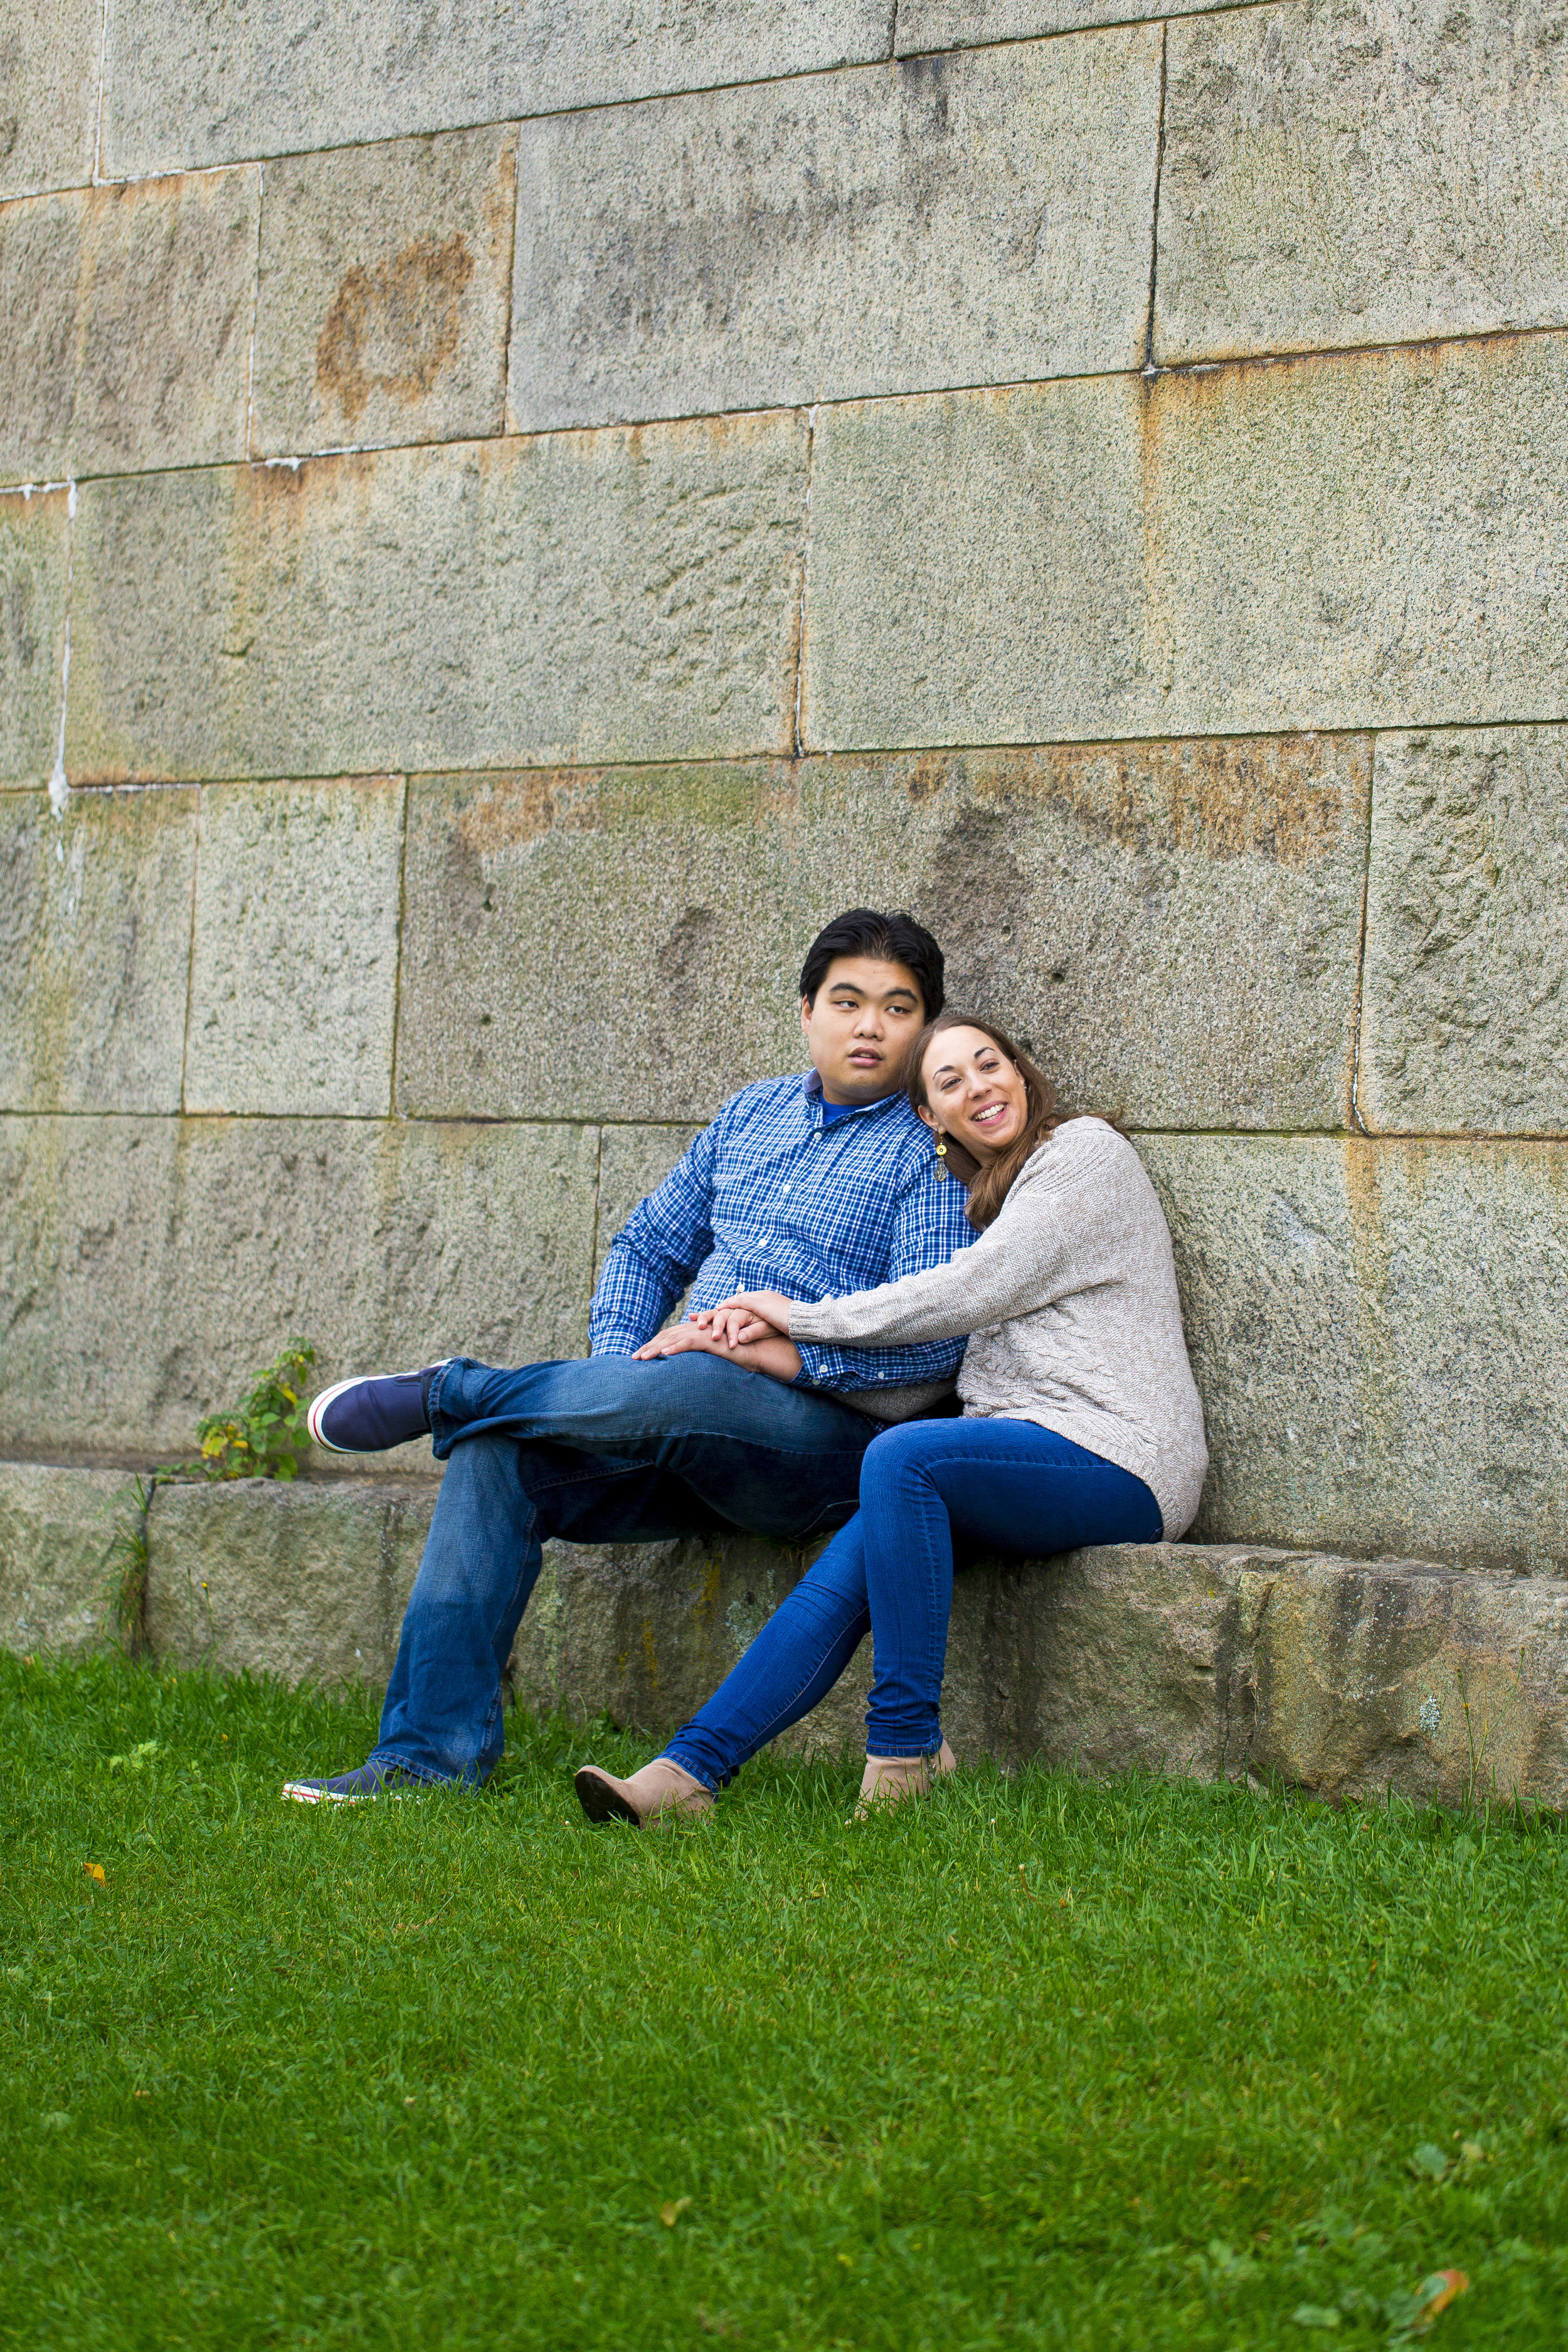 314A3699 Giovanni The Photographer Best Boston Wedding PhotographyErica and Richard's Engagement Session 10-29-17.jpg